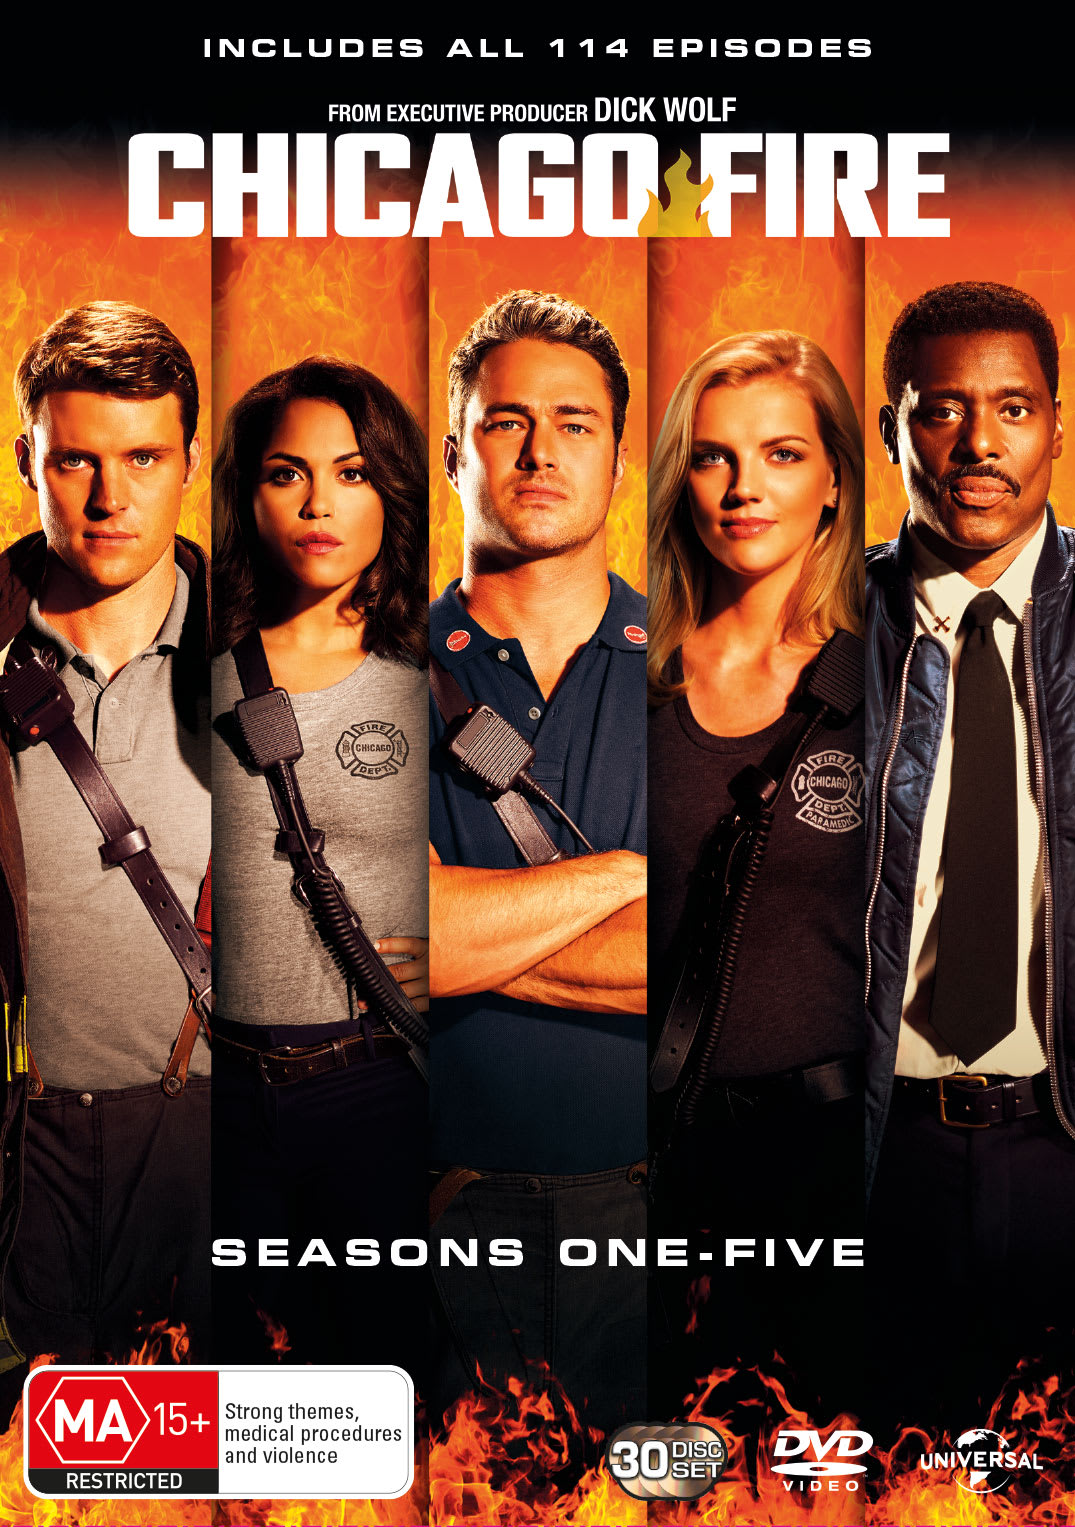 Chicago Fire: Seasons 1-5 (Box Set) [DVD]